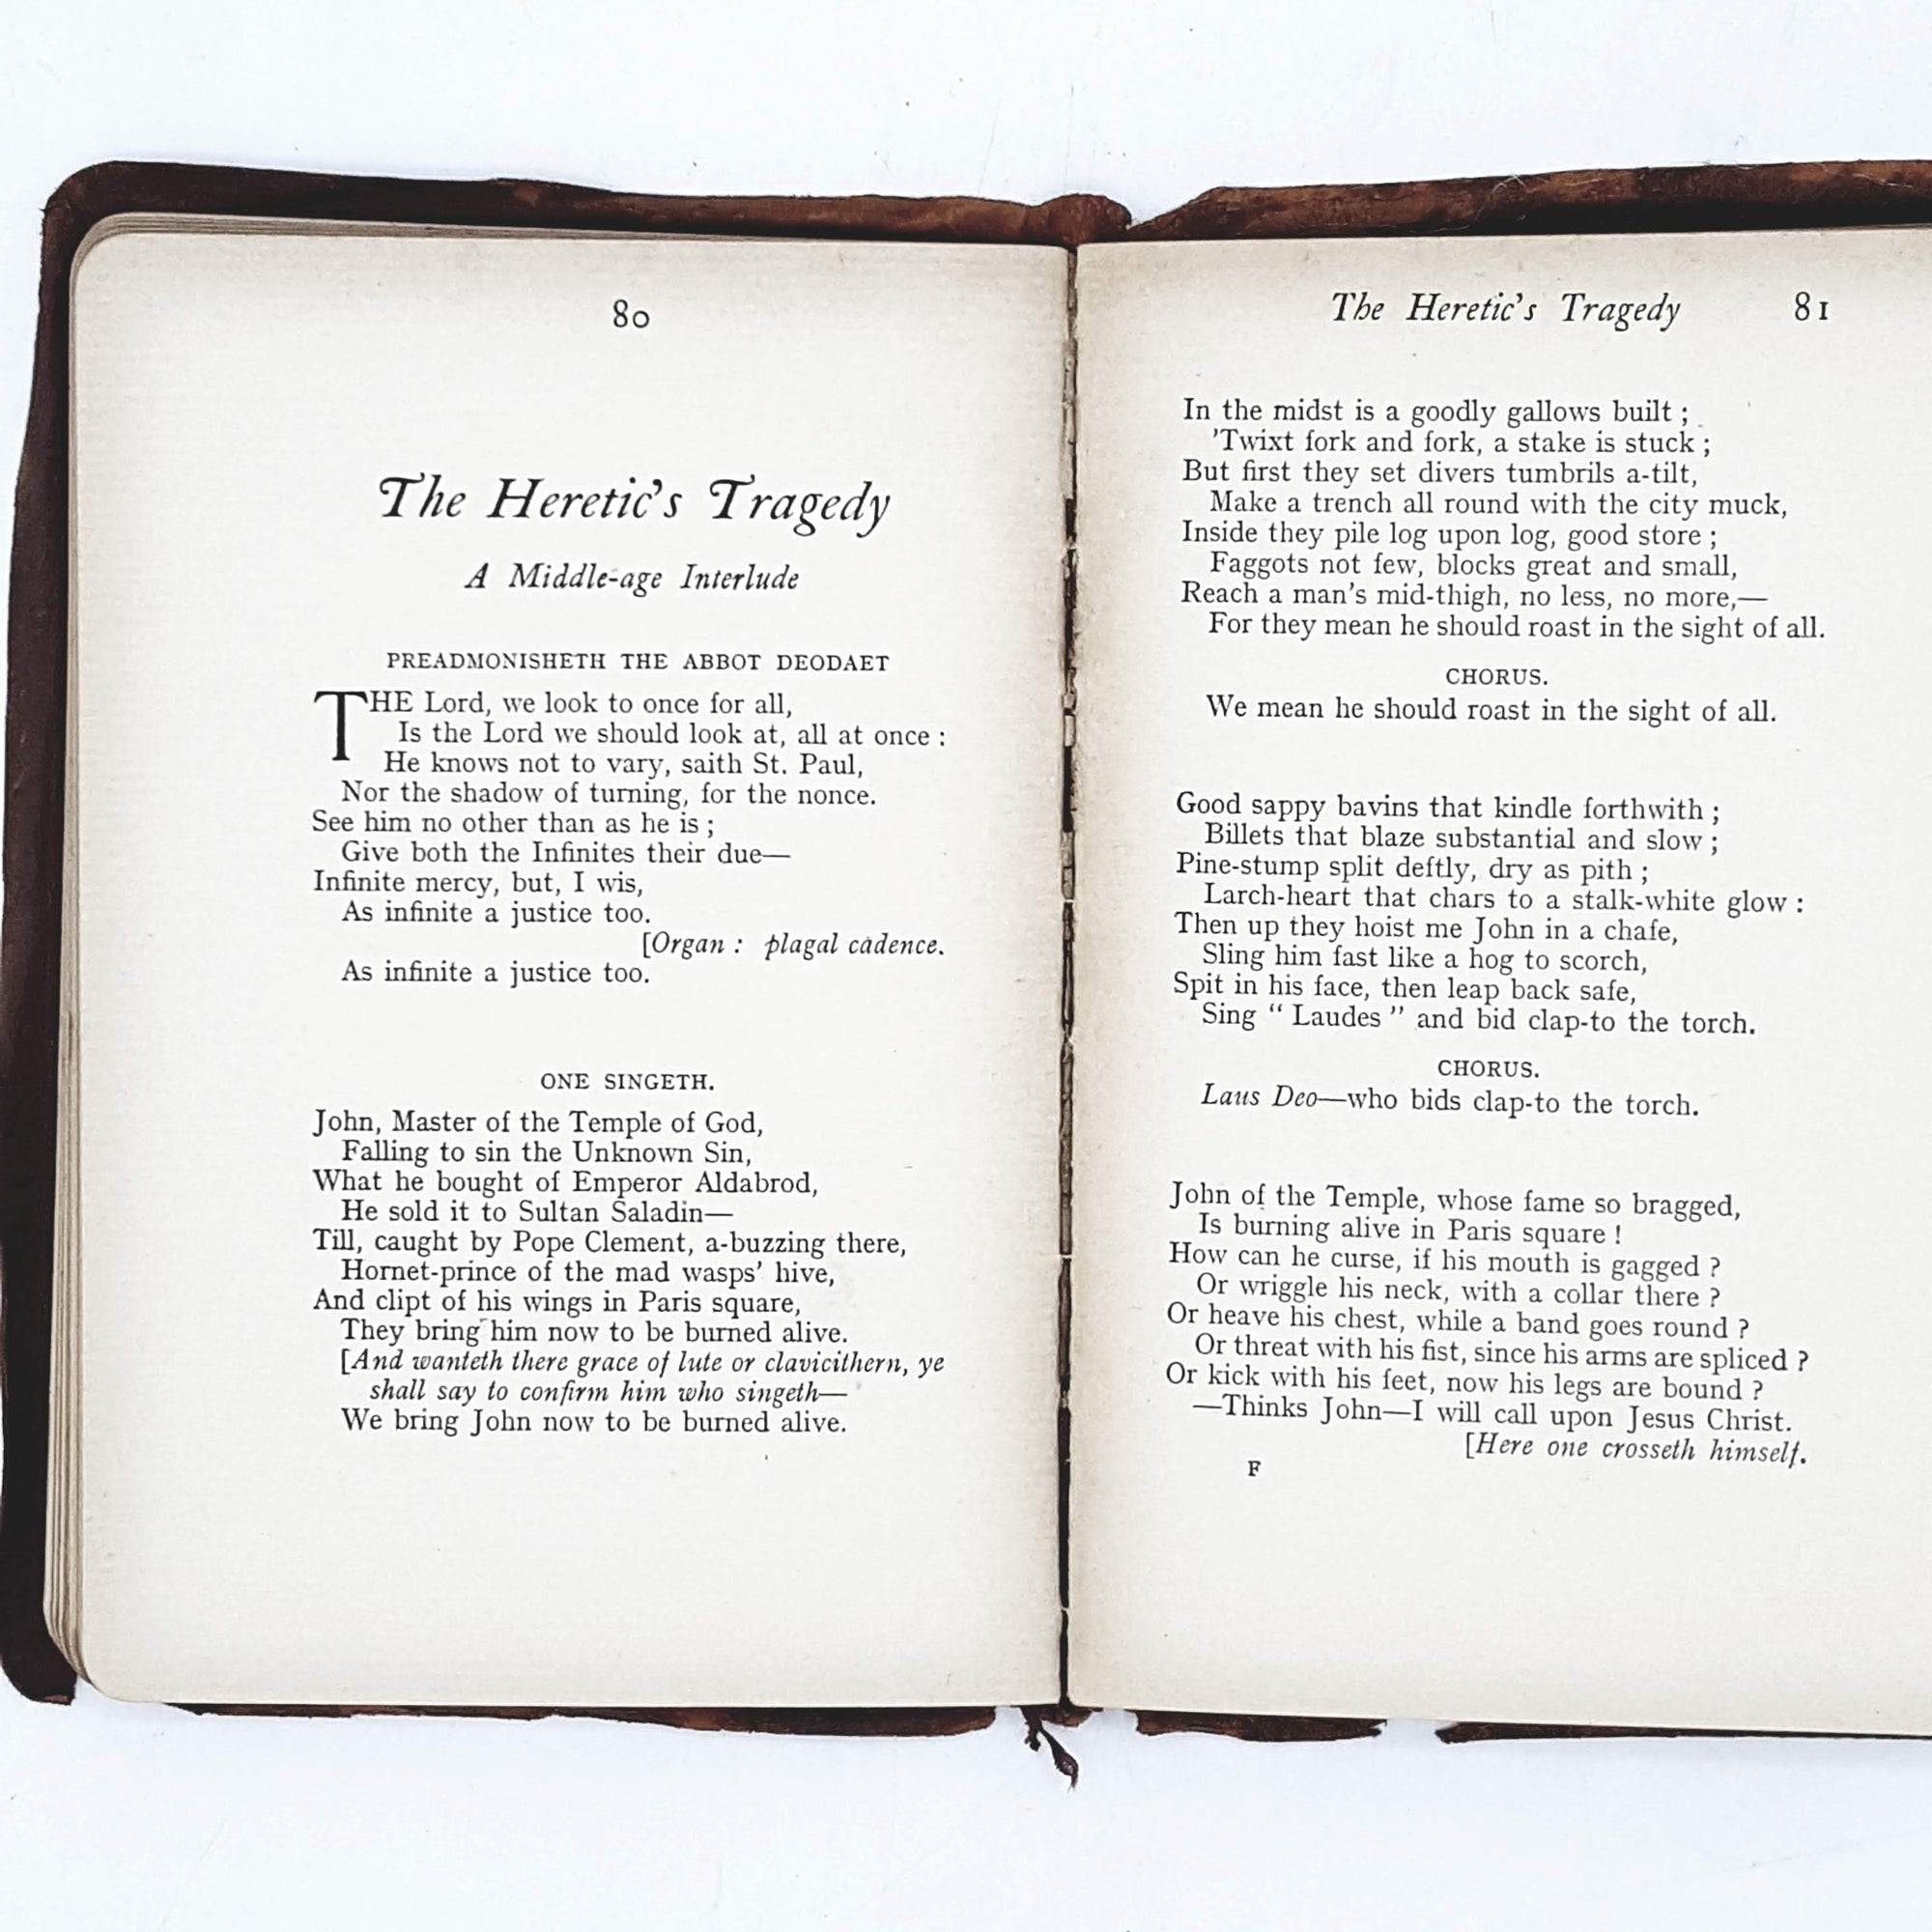 Poems of Robert and Elizabeth Browning c1909